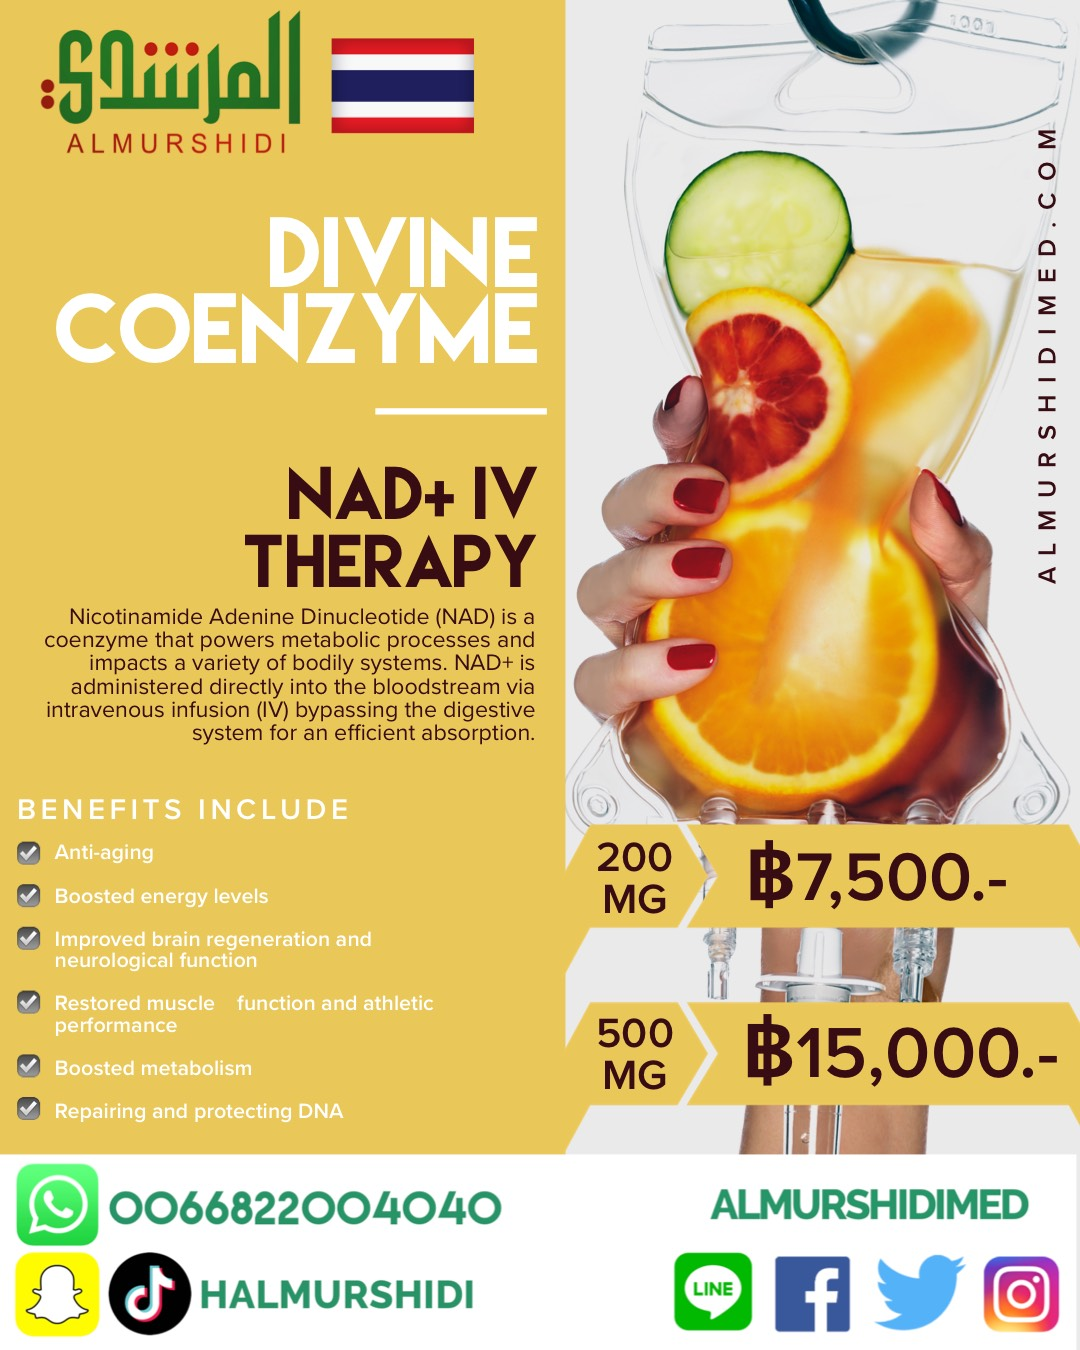 AFFORDABLE NAD+ IV THERAPY IN THAILAND